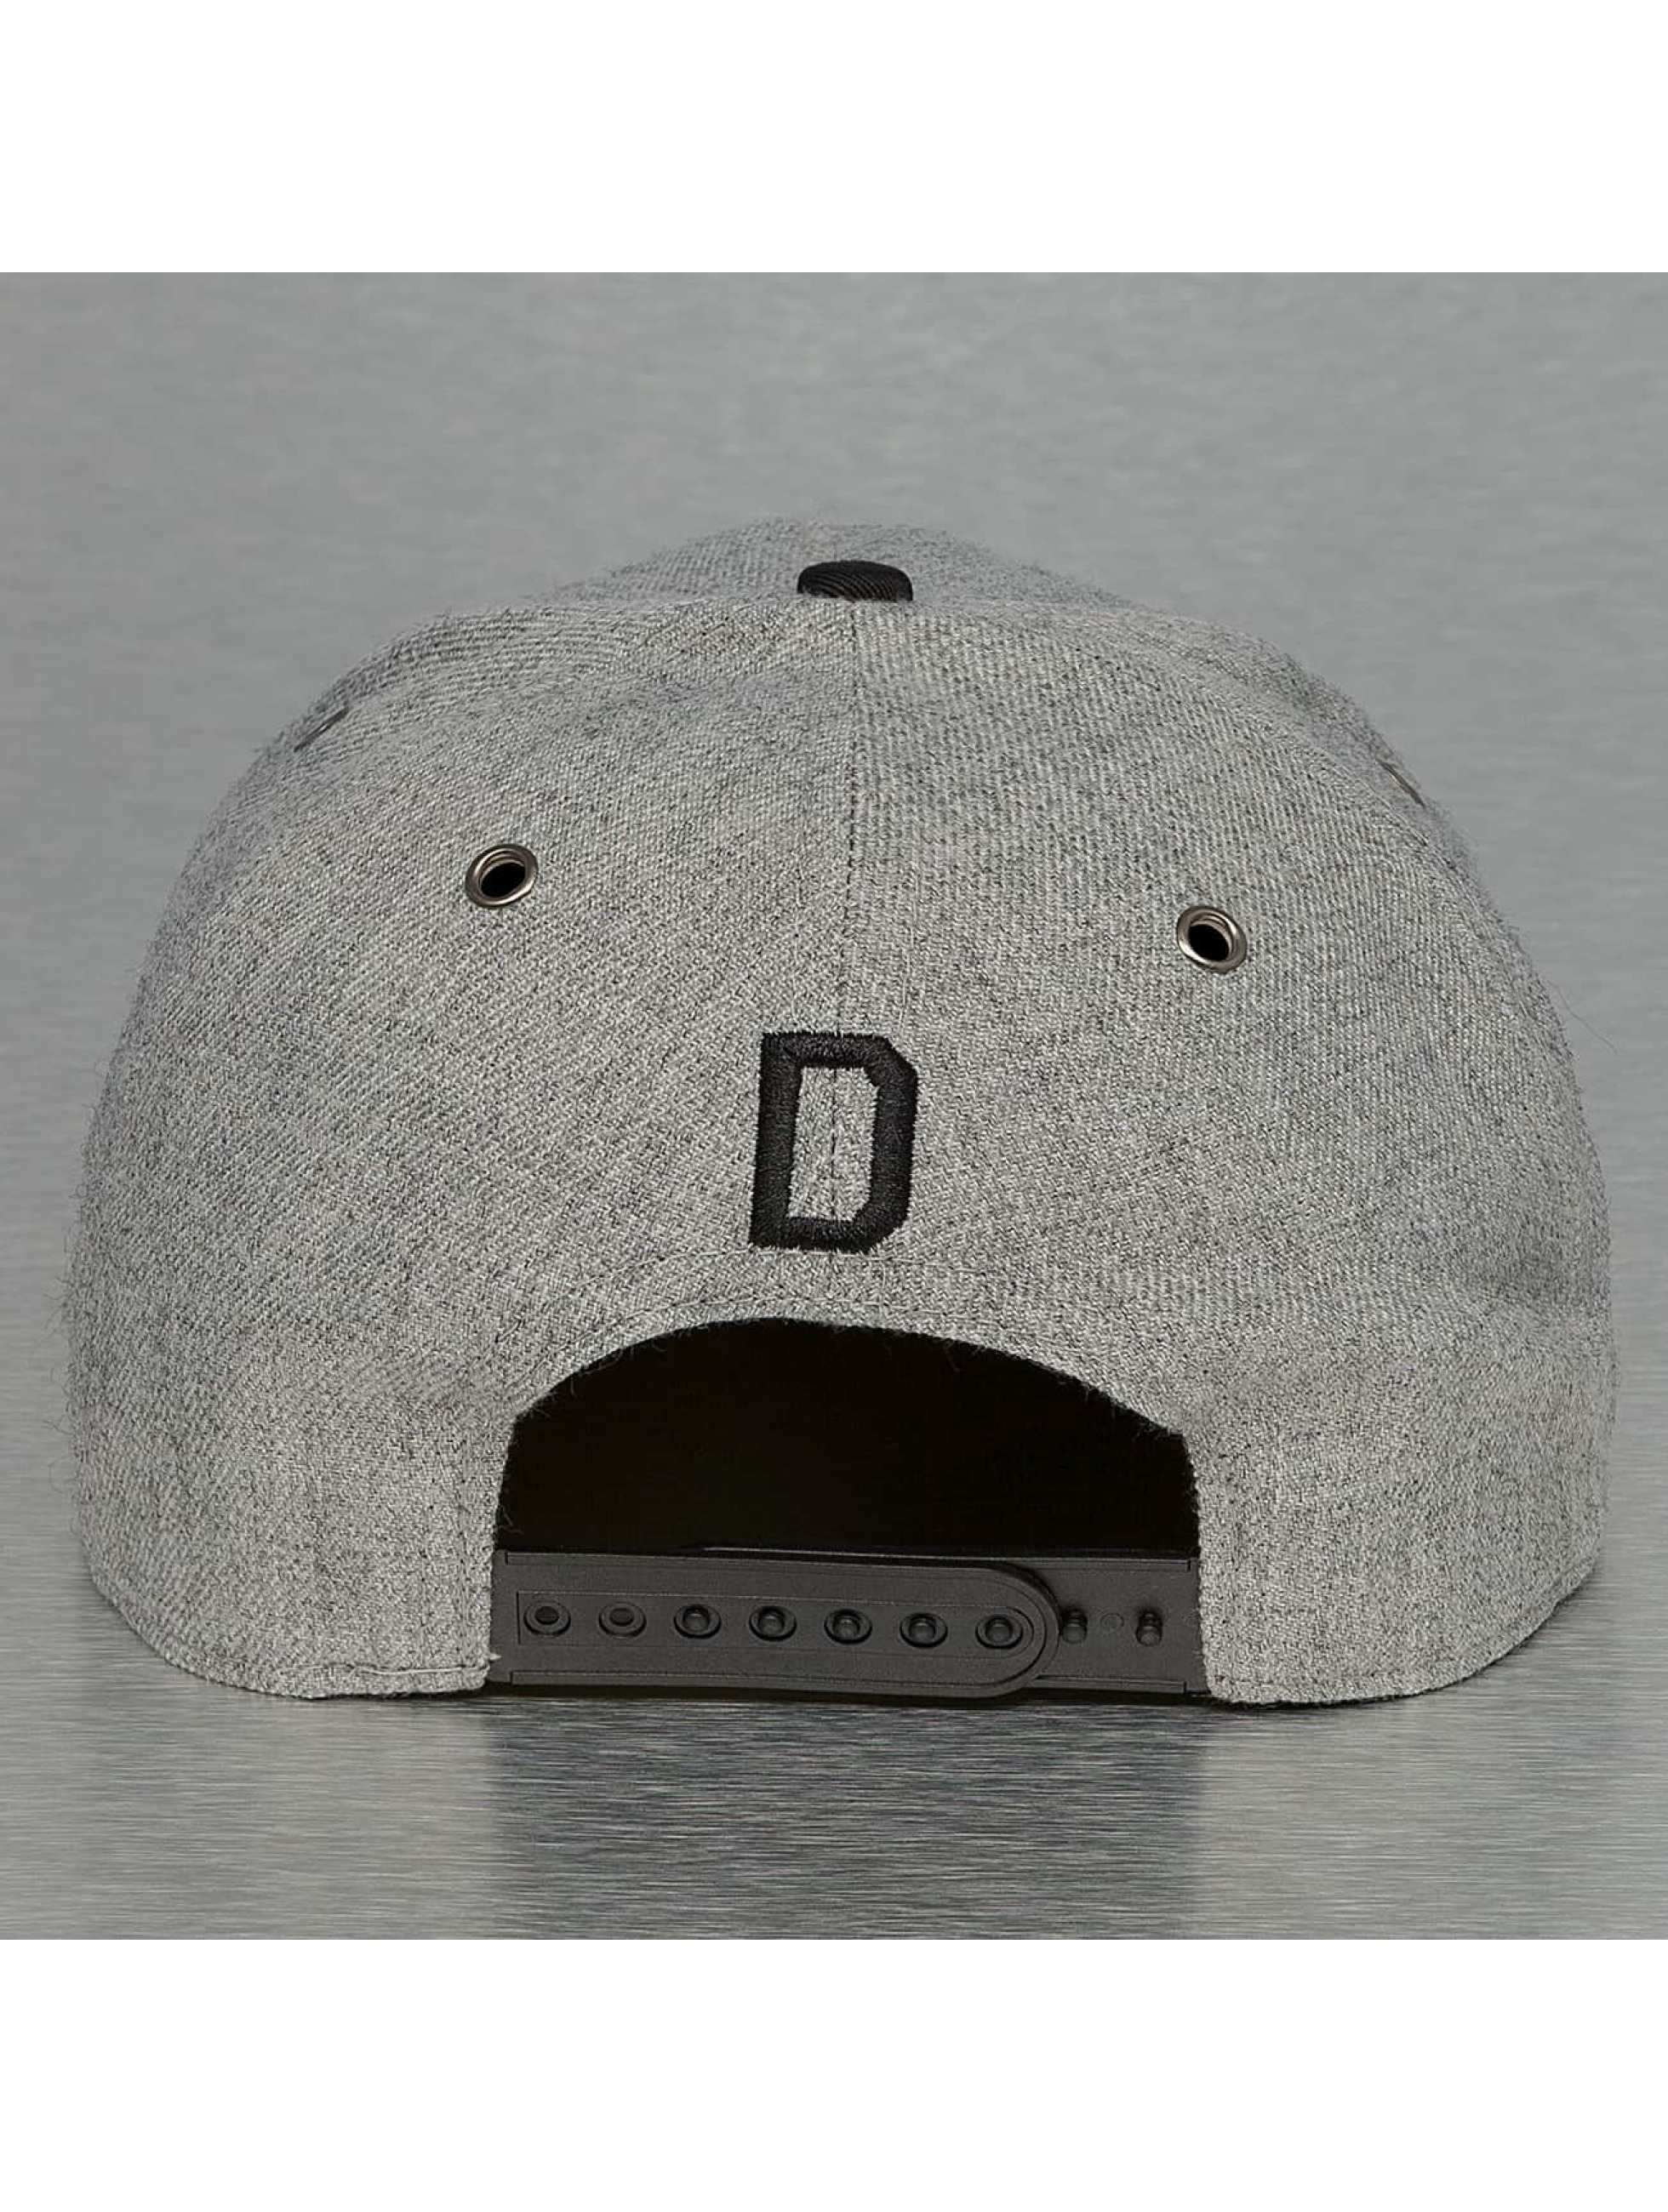 TrueSpin Casquette Snapback & Strapback ABC-D Wool gris